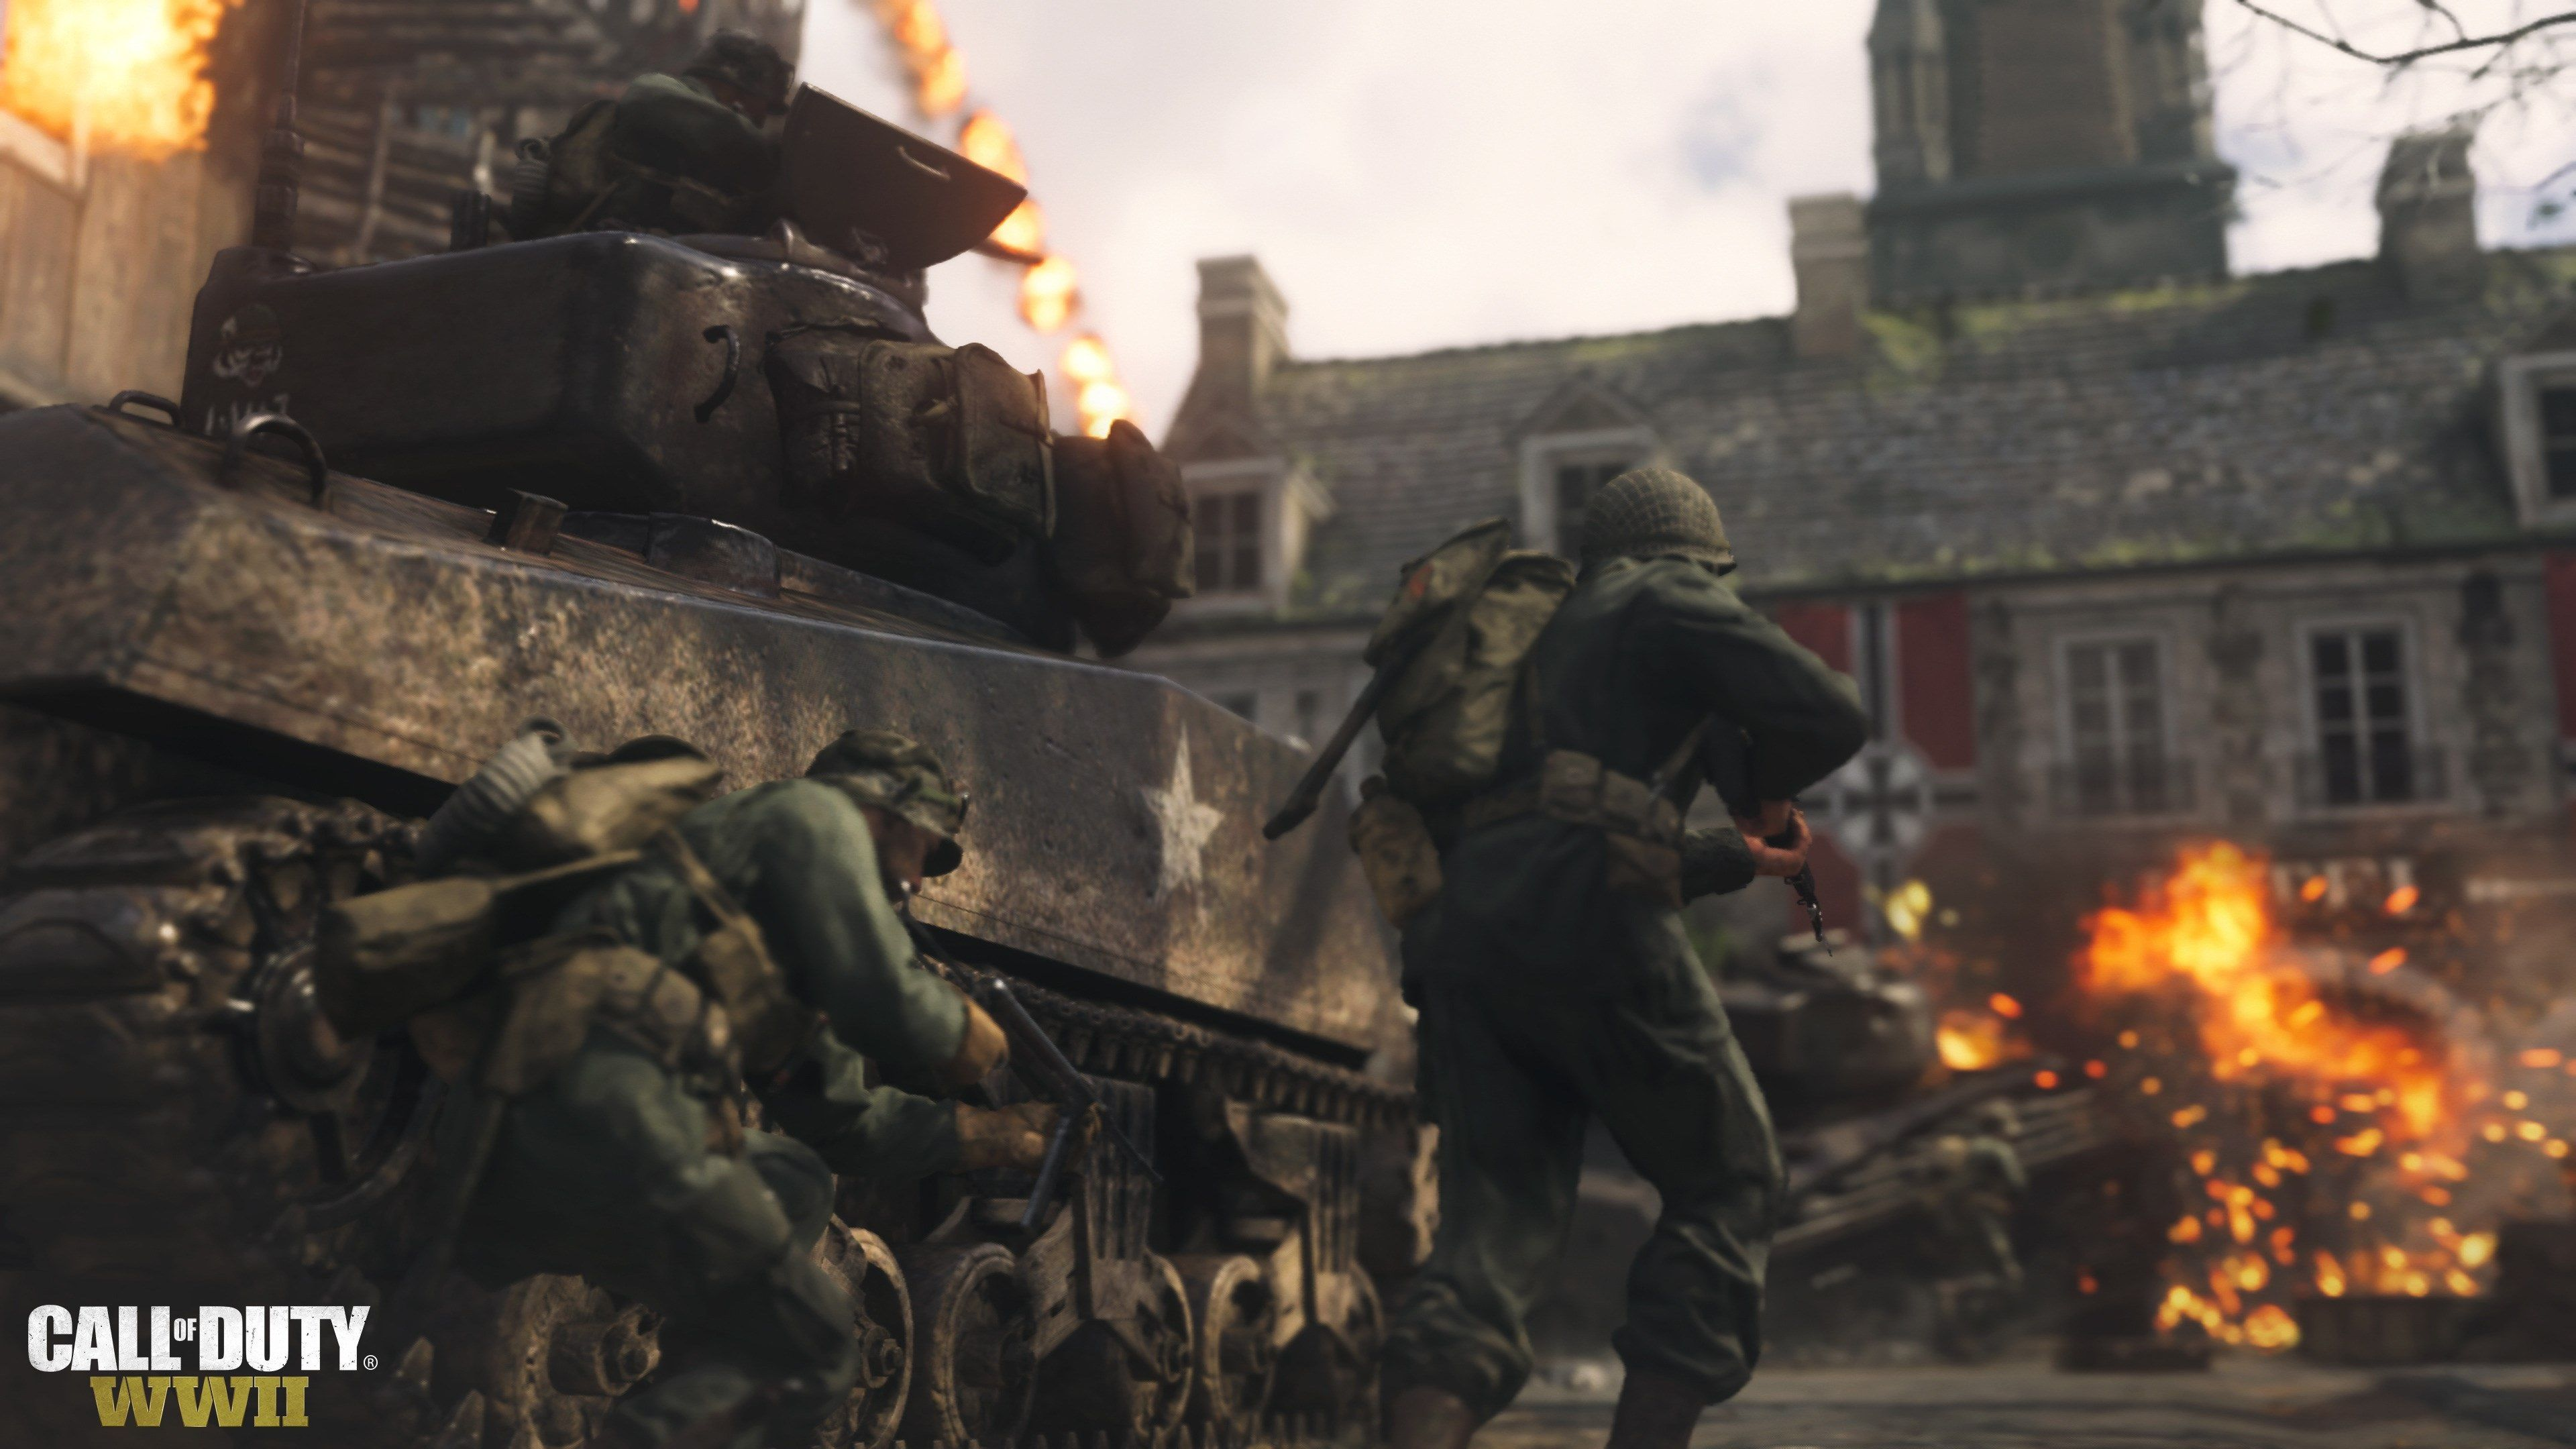 3840x2160 Call Of Duty Wwii 4k Wallpaper Of Windows Call Of Duty